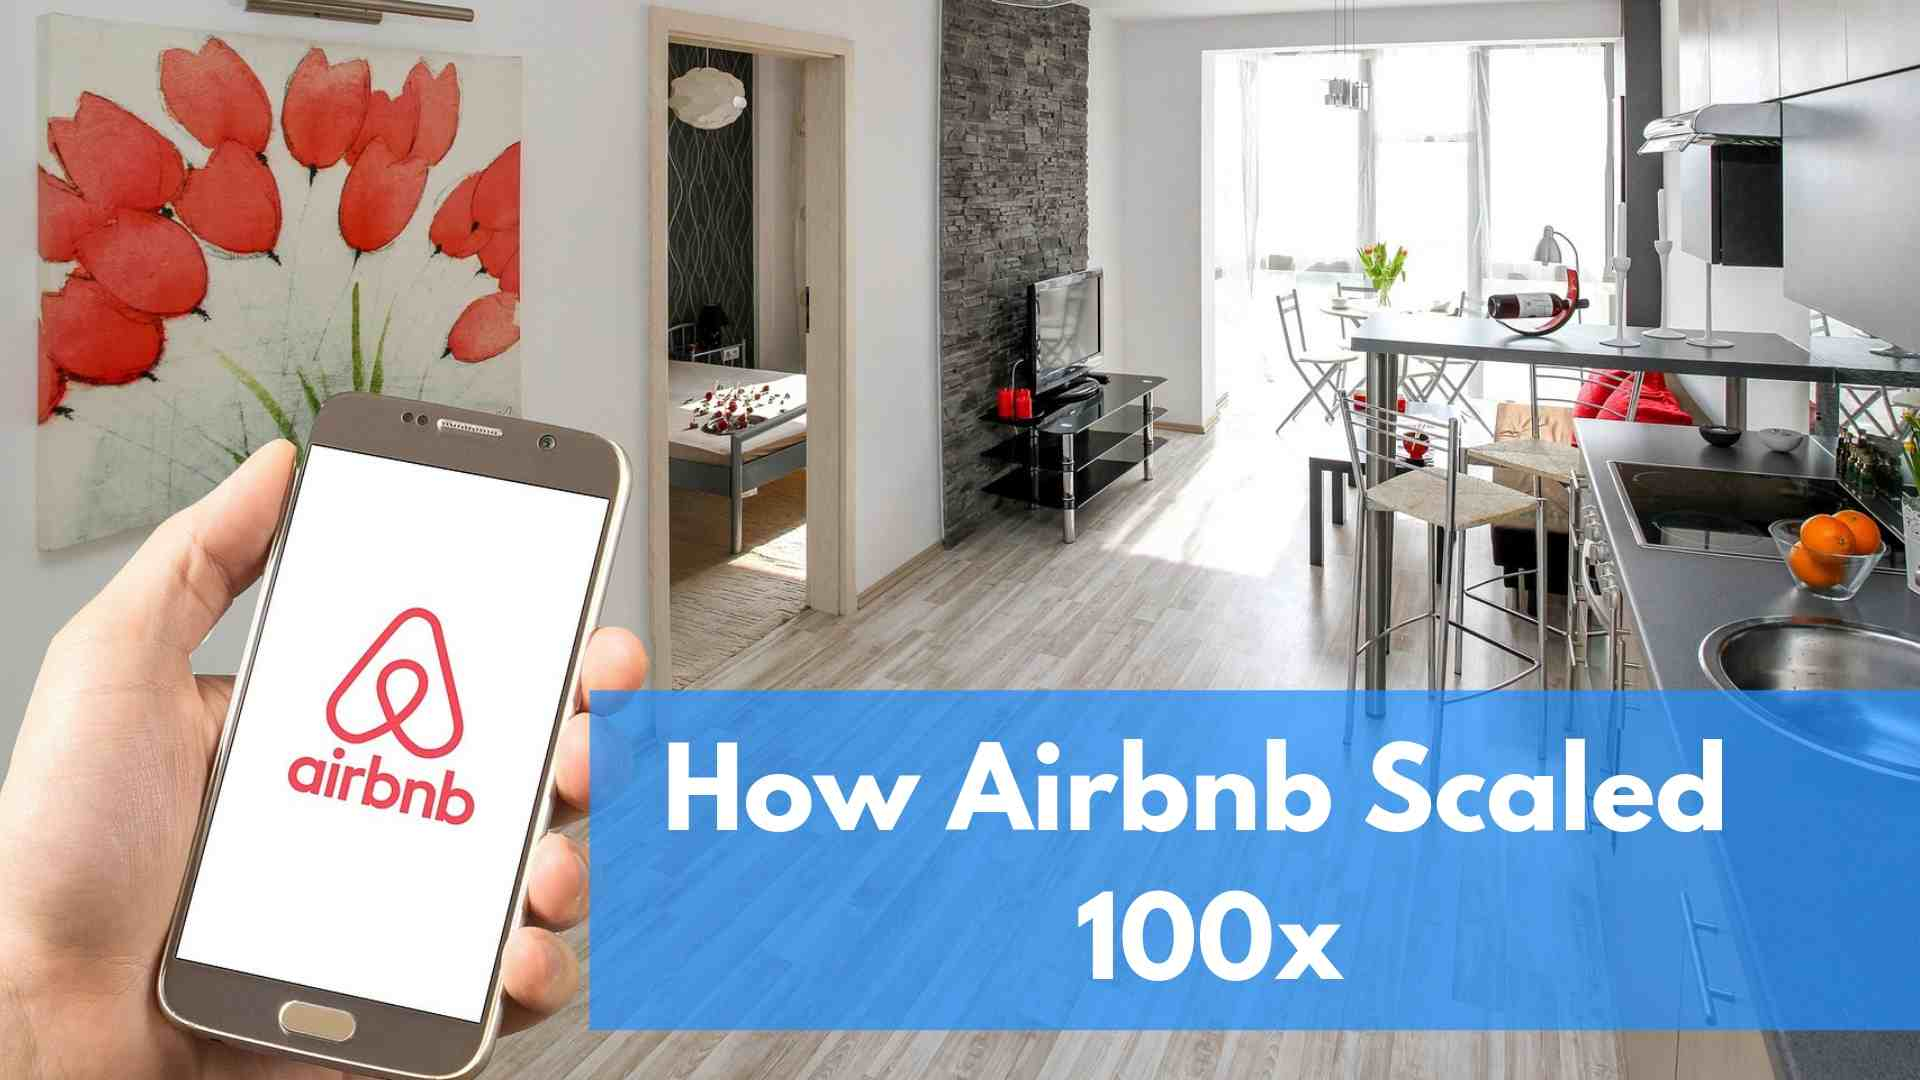 How Airbnb Scaled 100x